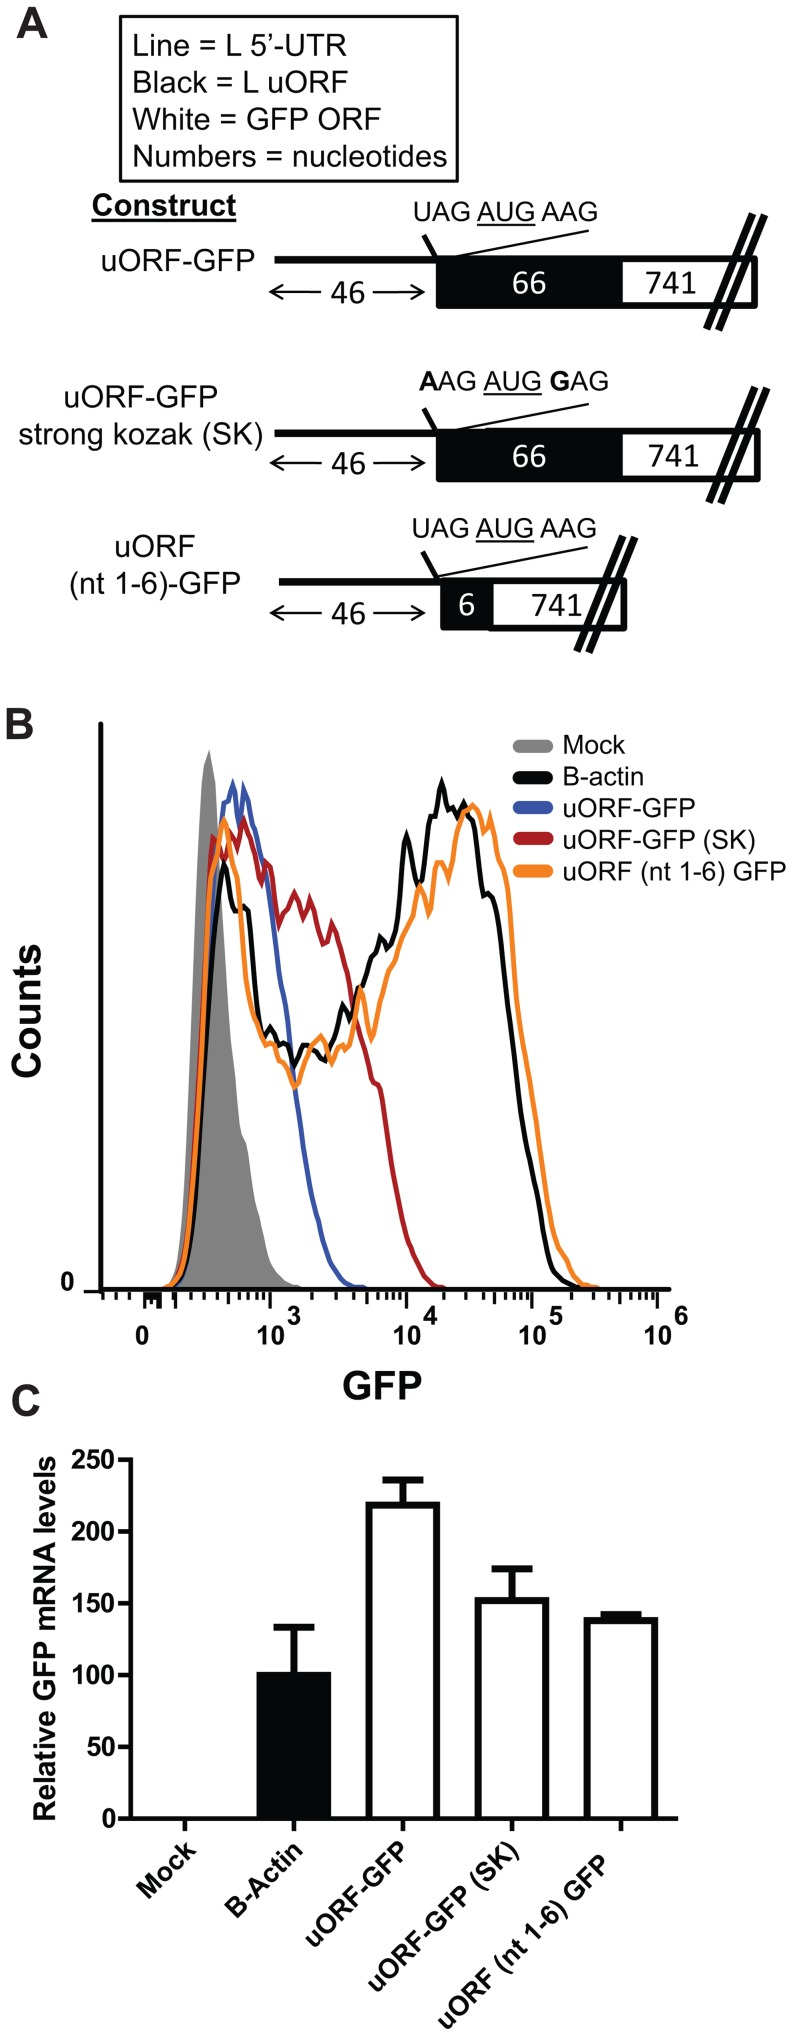 Efficiency of translation initiation at L uAUG is determined by its sequence context. A . L 5′-UTR GFP mRNA reporter constructs were generated such that the uORF is fused in frame to GFP. The nucleotide sequence immediately surrounding the uAUG of each construct is displayed. The first construct (uORF-GFP) includes the first 46 nucleotides of the L 5′-UTR up to the uAUG followed by the entire L uORF sequence placed in frame with the GFP ORF (labeled uORF-GFP). The middle construct (uORF-GFP SK) is identical to the first, but the uAUG is surrounded by a strong Kozak sequence (A at the −3 position and a G at the +4 position, where the A of the AUG is designated as +1). The bottom construct includes the L 5′-UTR, through the uAUG and the second codon of the uORF which was placed in frame with the GFP ORF, but lacks the rest of the uORF. In each case, the start codon for GFP was removed. The number of nucleotides in each construct is indicated and the features of each construct are summarized in the box above the diagram. B . Equal amounts of each in vitro transcribed mRNA were transfected into 293T cells. At 2.5 hours post transfection, cells were harvested and analyzed by flow cytometry. The experiment was performed in triplicate, and a representative sample is displayed for each group. C . GFP mRNA levels, as determined by real time PCR, present in the transfected cells described in B were determined for each sample.